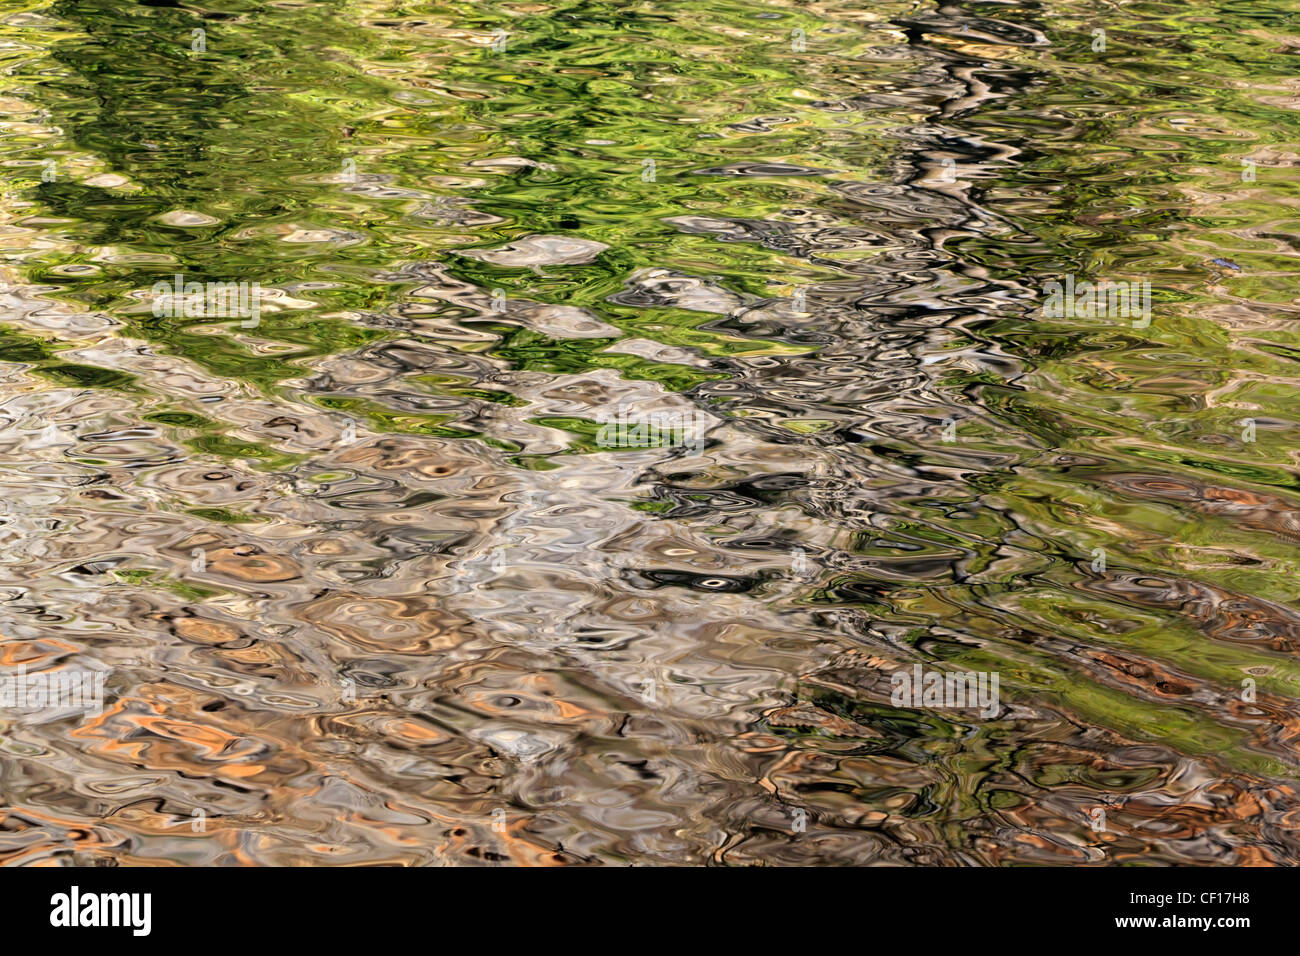 Reflections in water - Stock Image